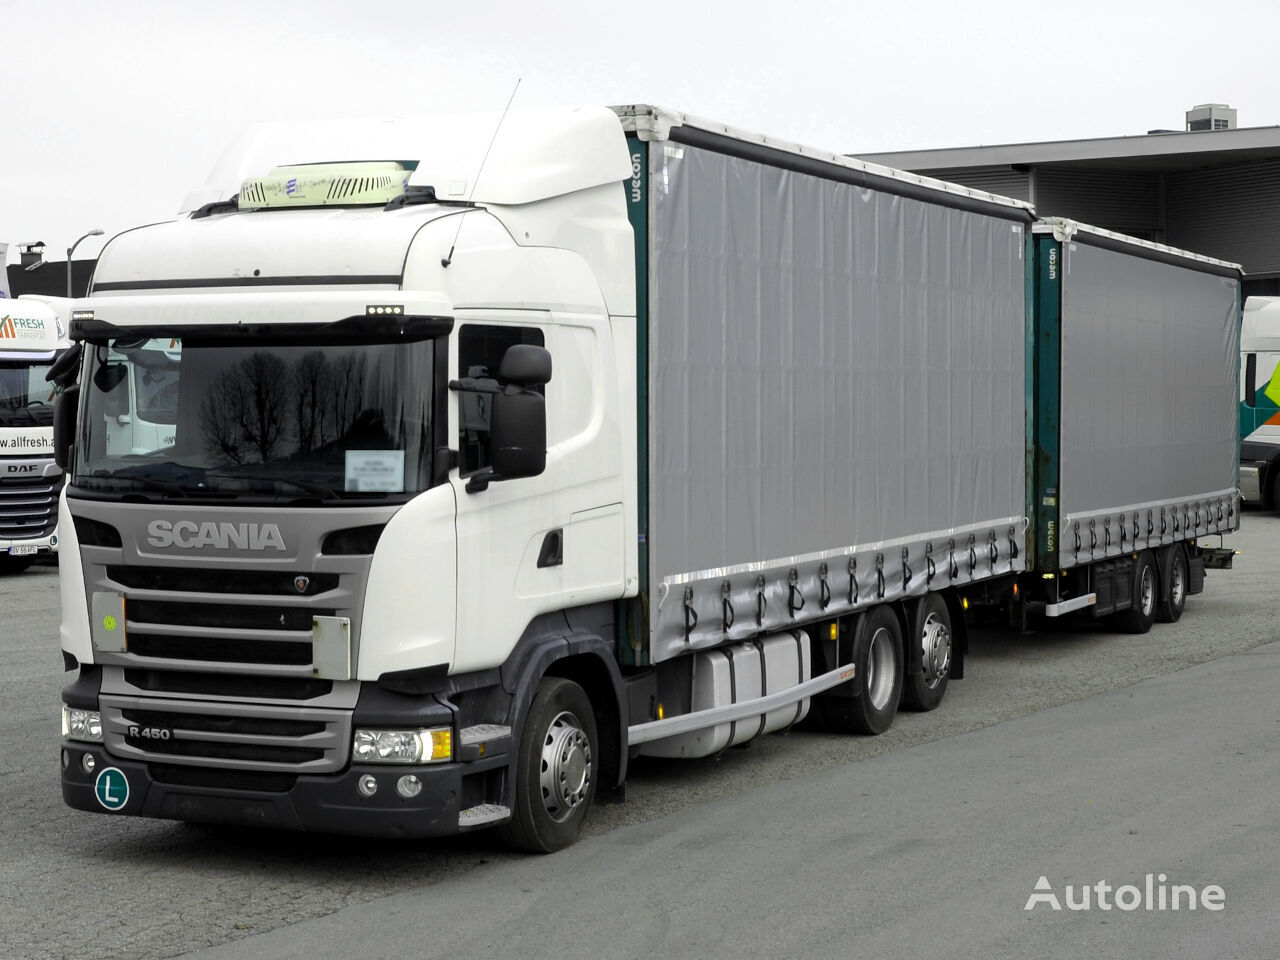 SCANIA R 450 LB6x2MLB Jumbo + Wecon Trailer curtainsider truck + curtain side trailer